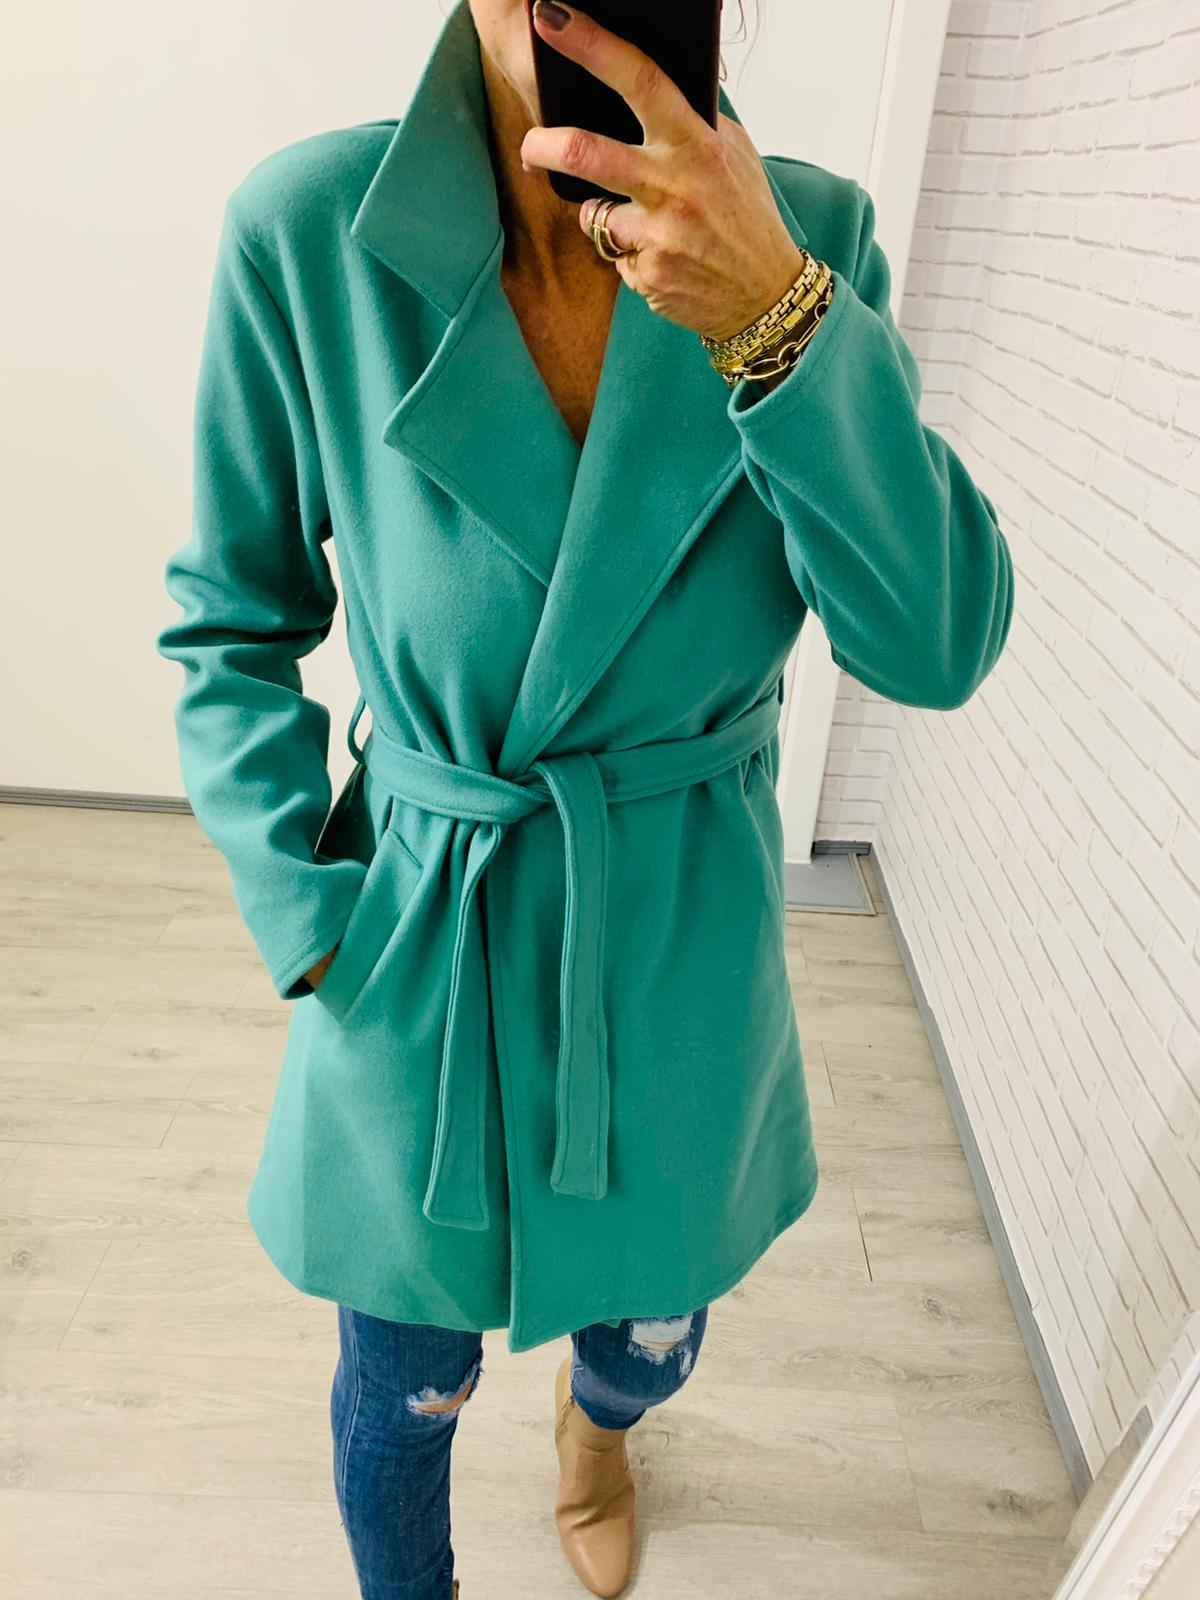 Green wrap coat